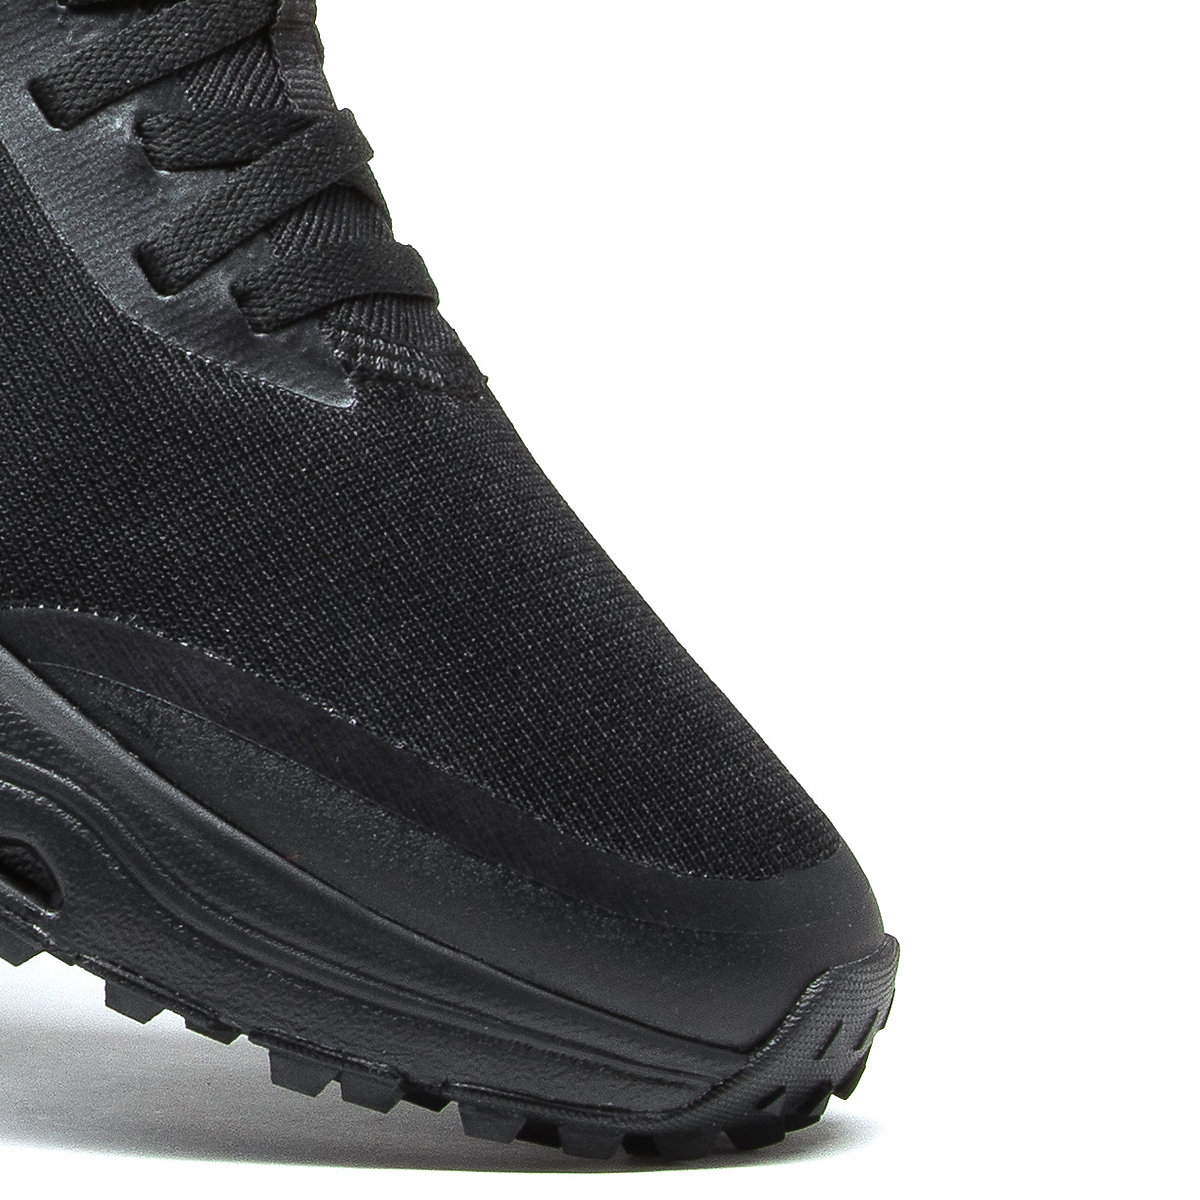 Raptor Breathable Upper and Reinforced Toe